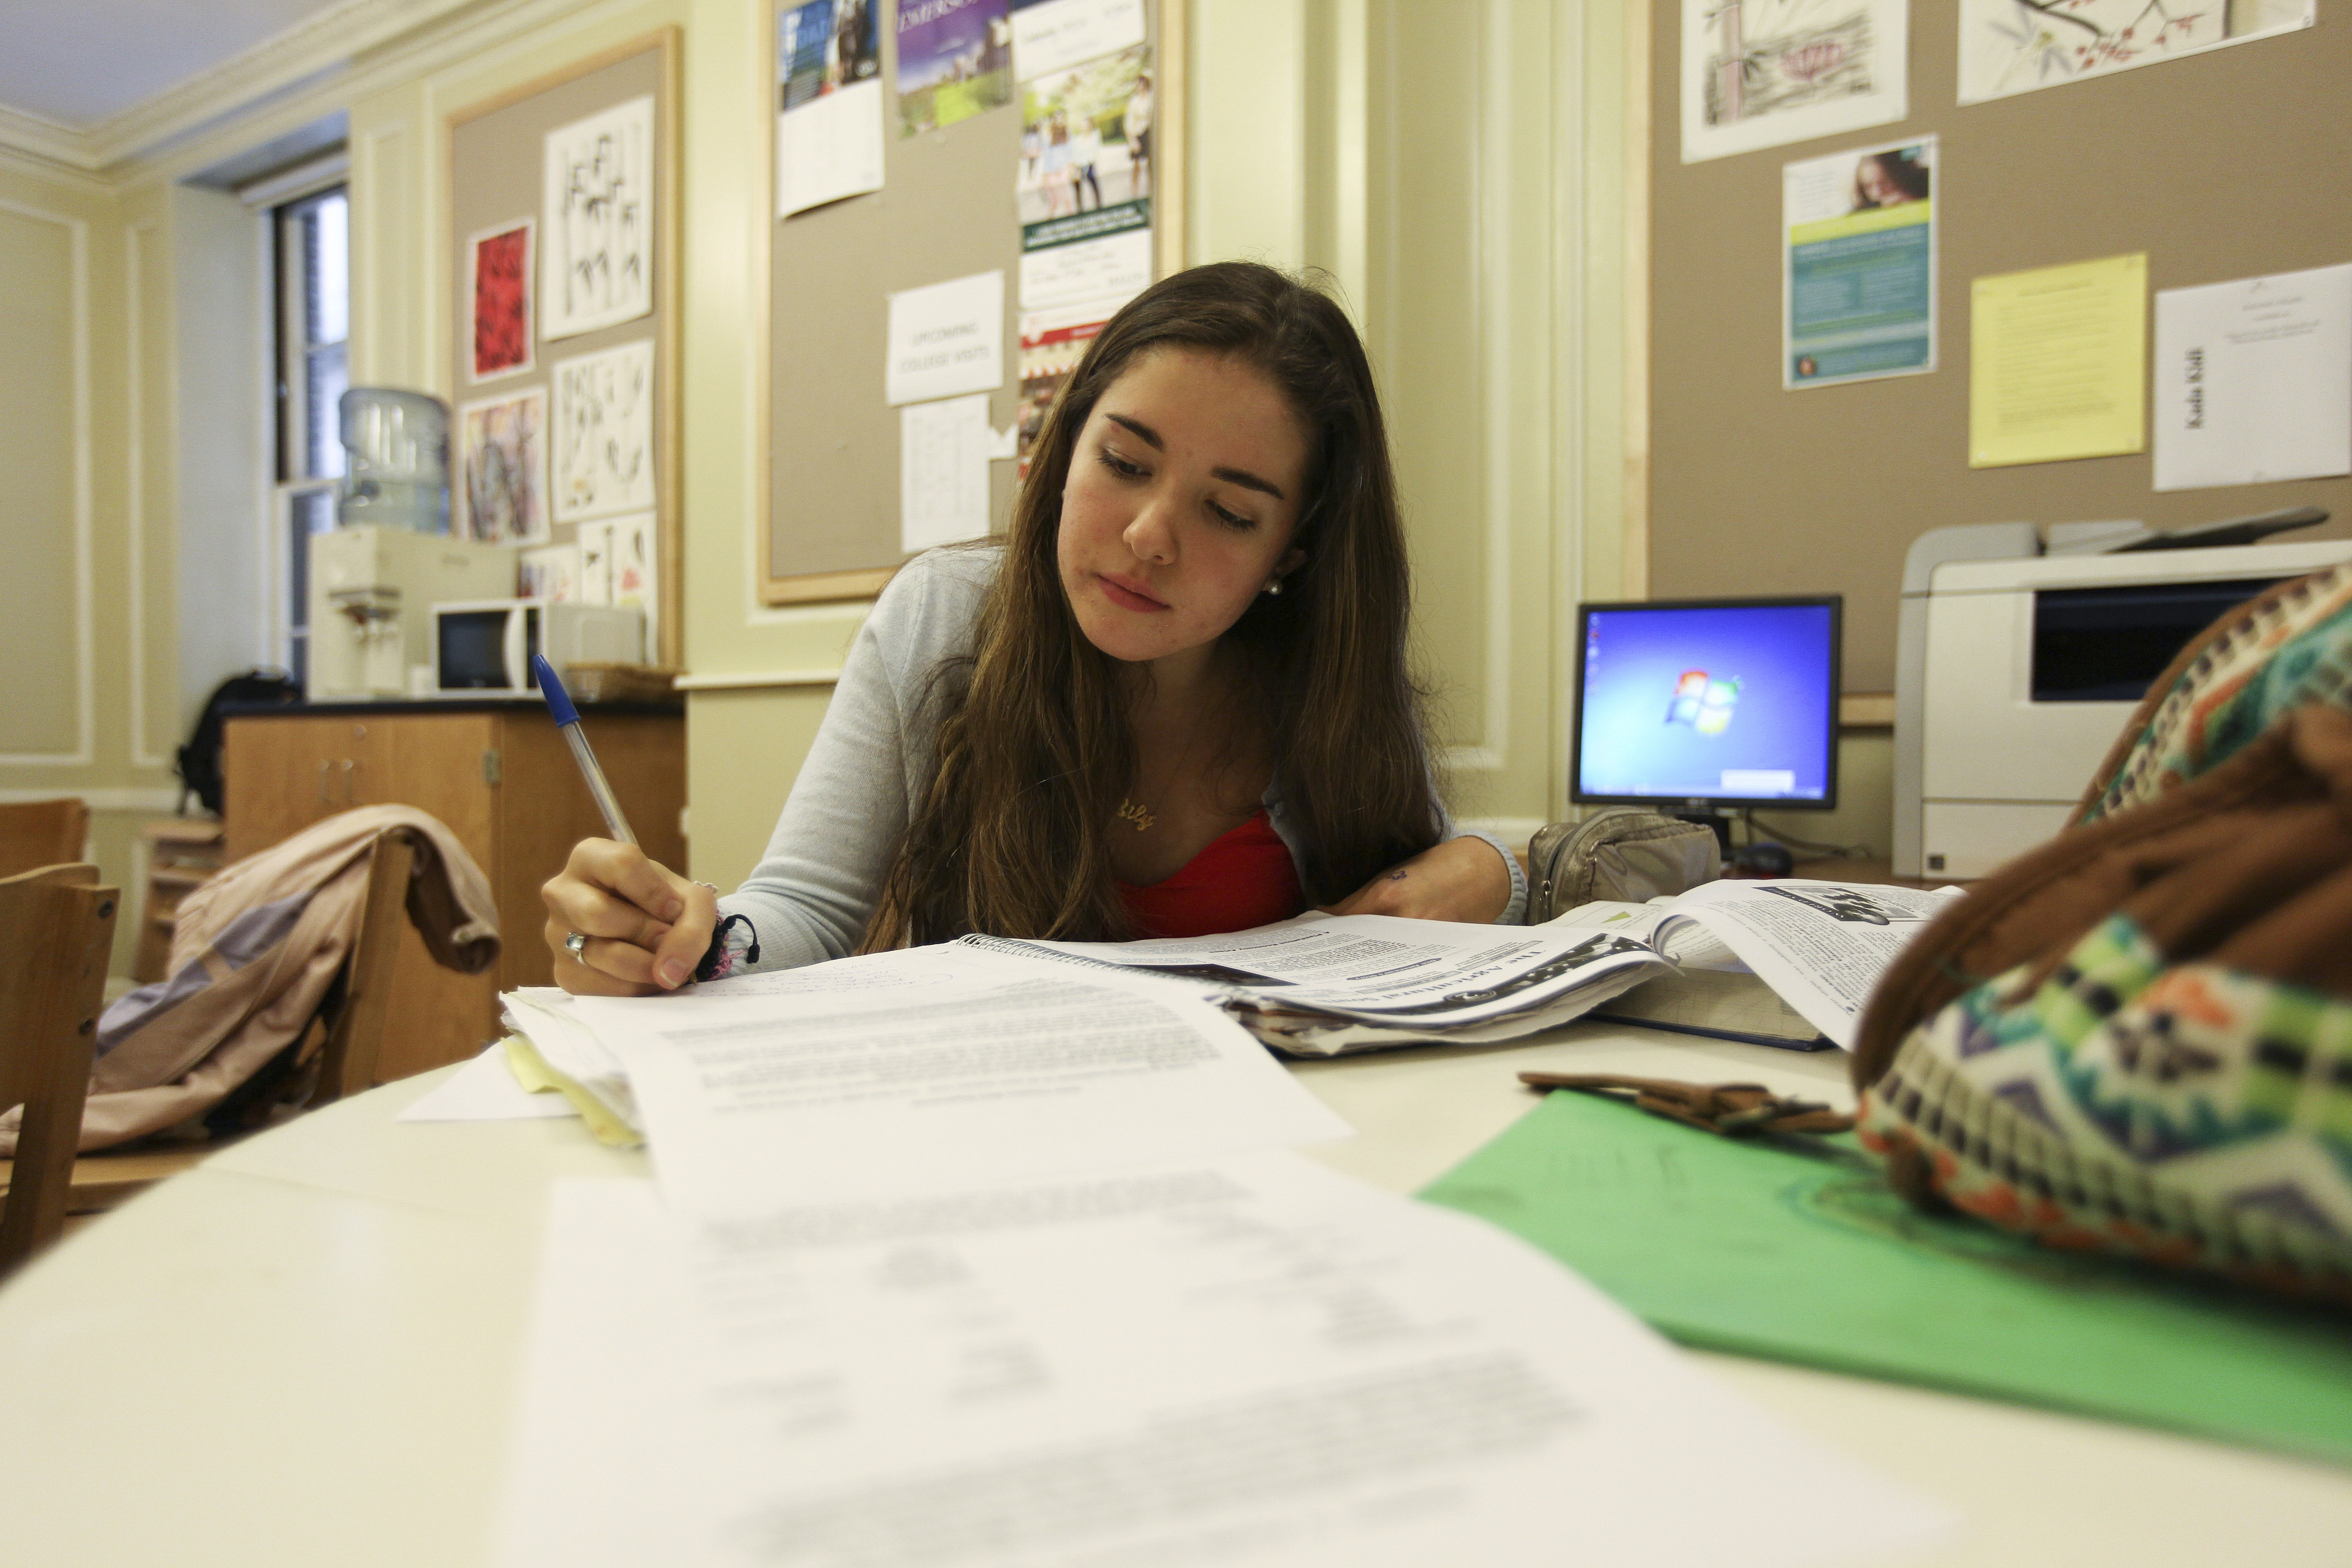 Lily Geiger, 17, of New York City, experienced problems when uploading her college application.